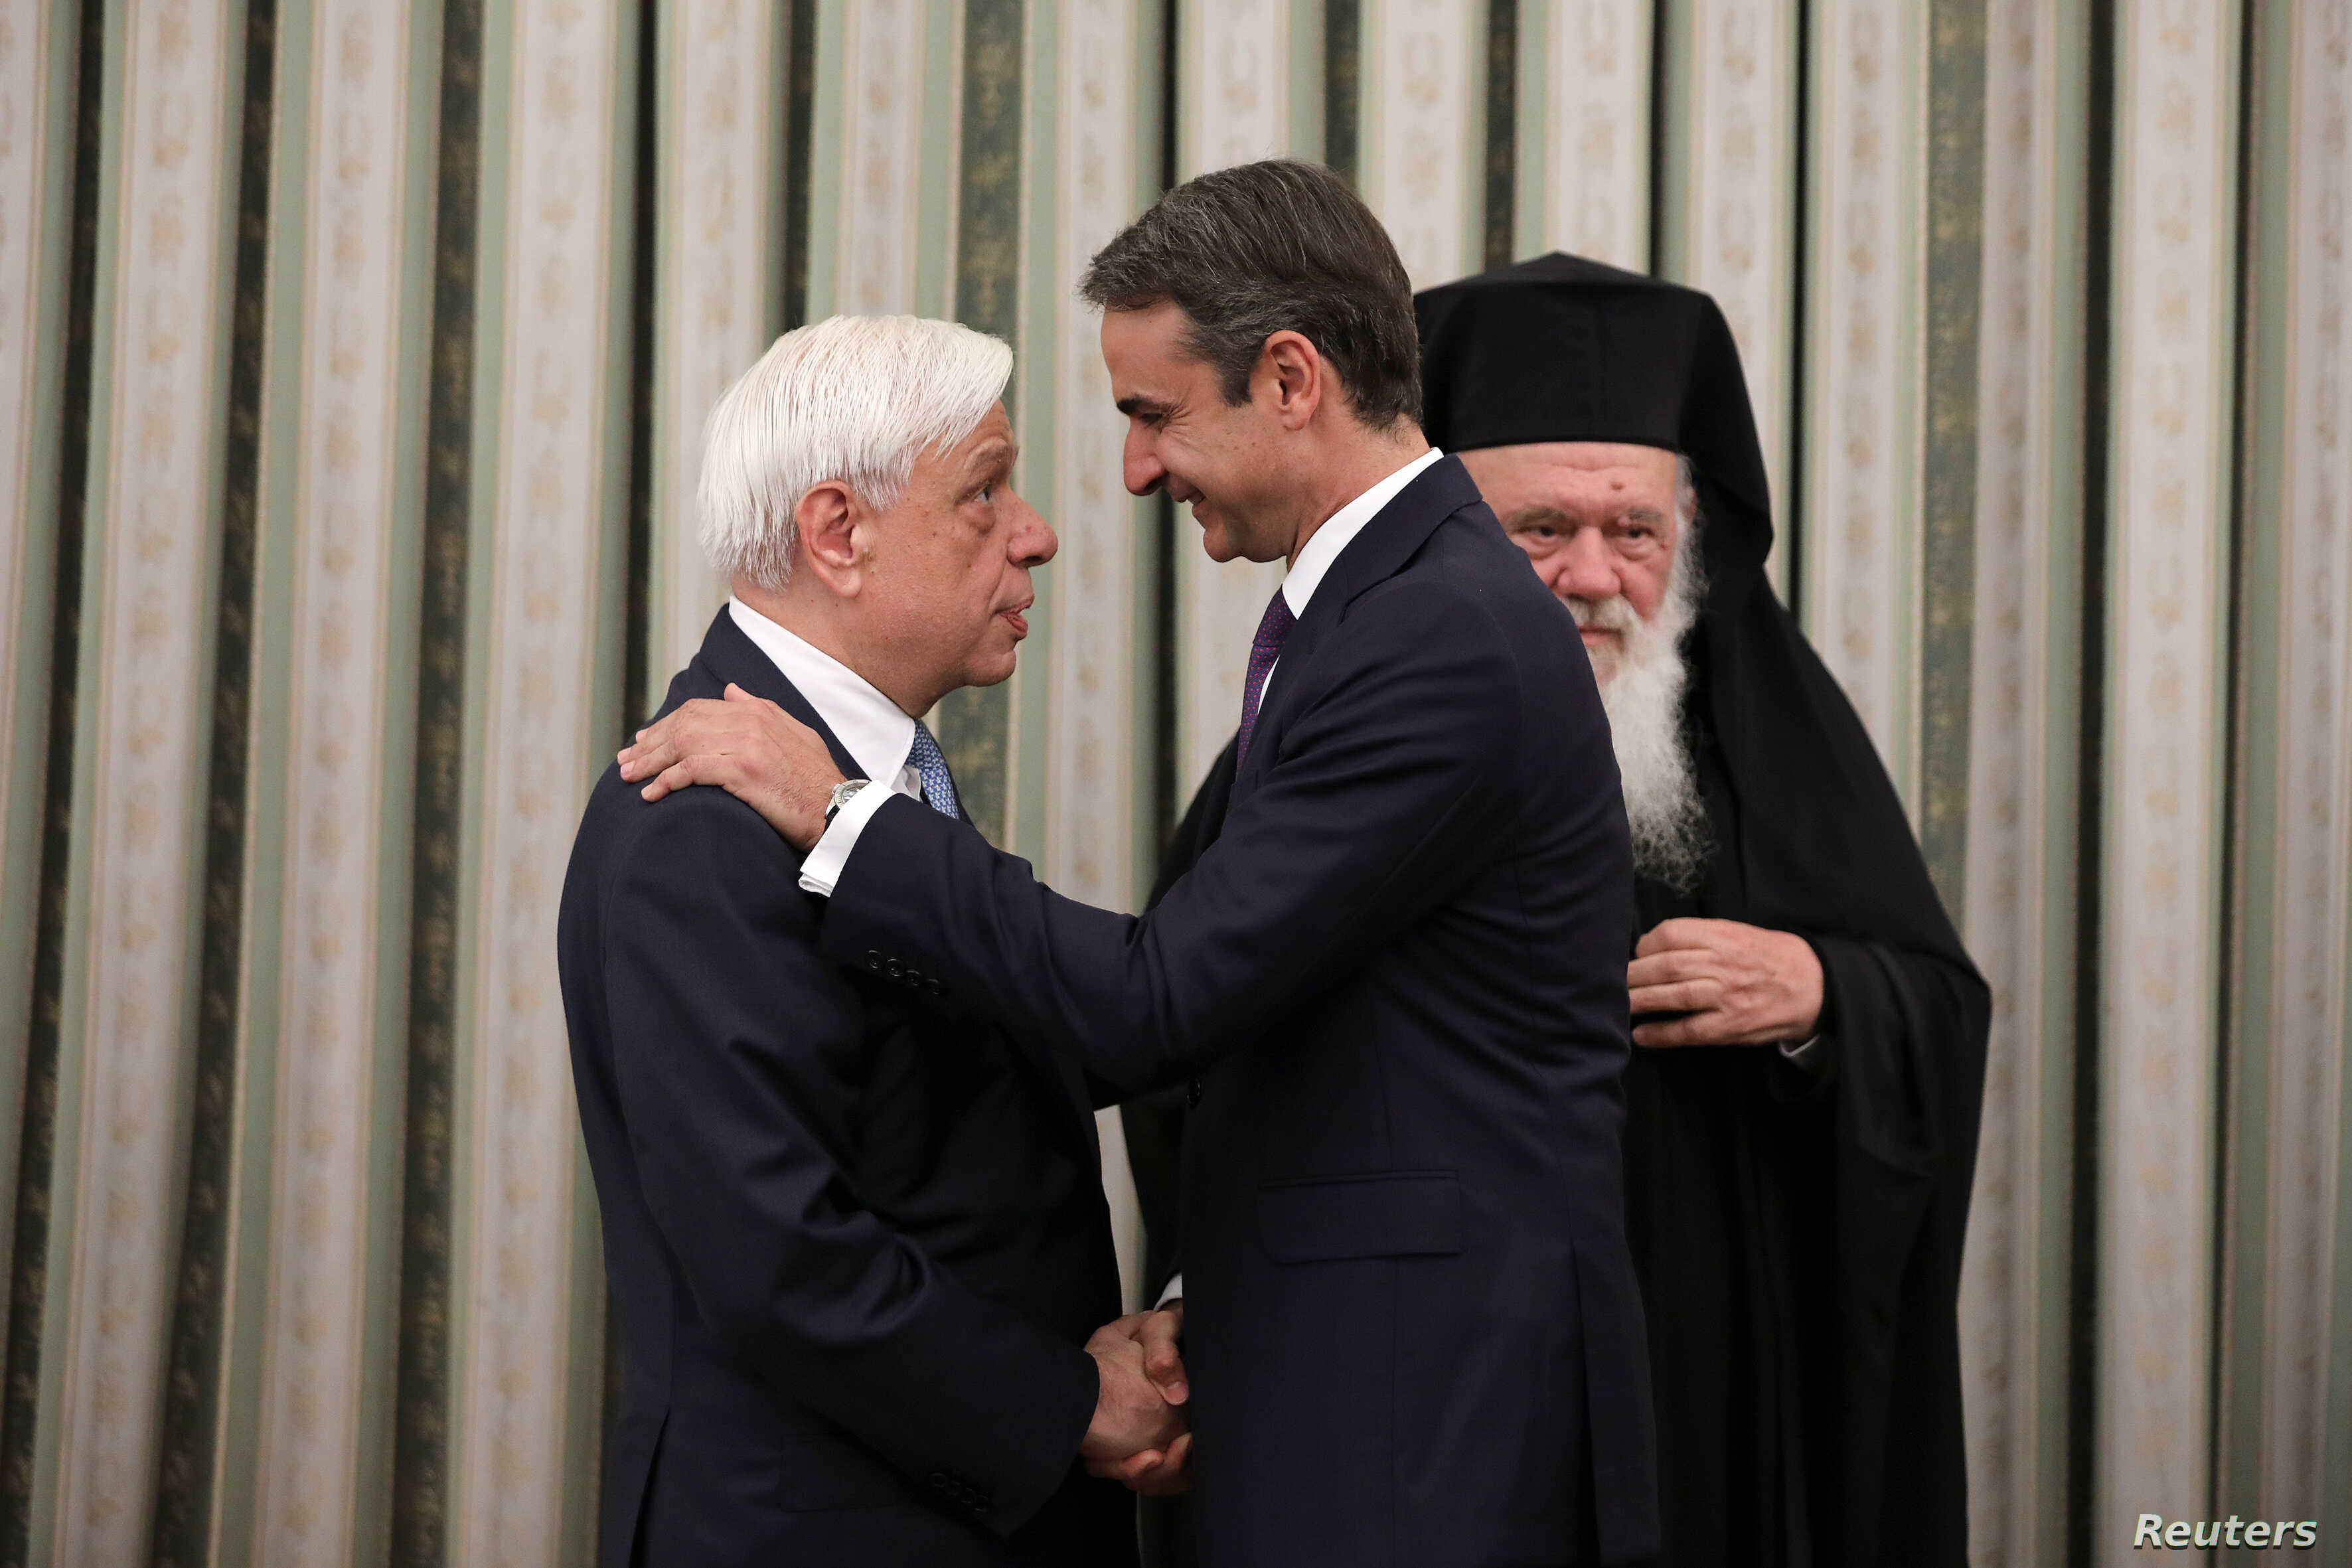 New Democracy conservative party leader Kyriakos Mitsotakis shakes hands with Greek President Prokopis Pavlopoulos, near Greece's Orthodox Church Archbishop Ieronimos, at a swearing-in ceremony as prime minister, in Athens, Greece, July 8, 2019.